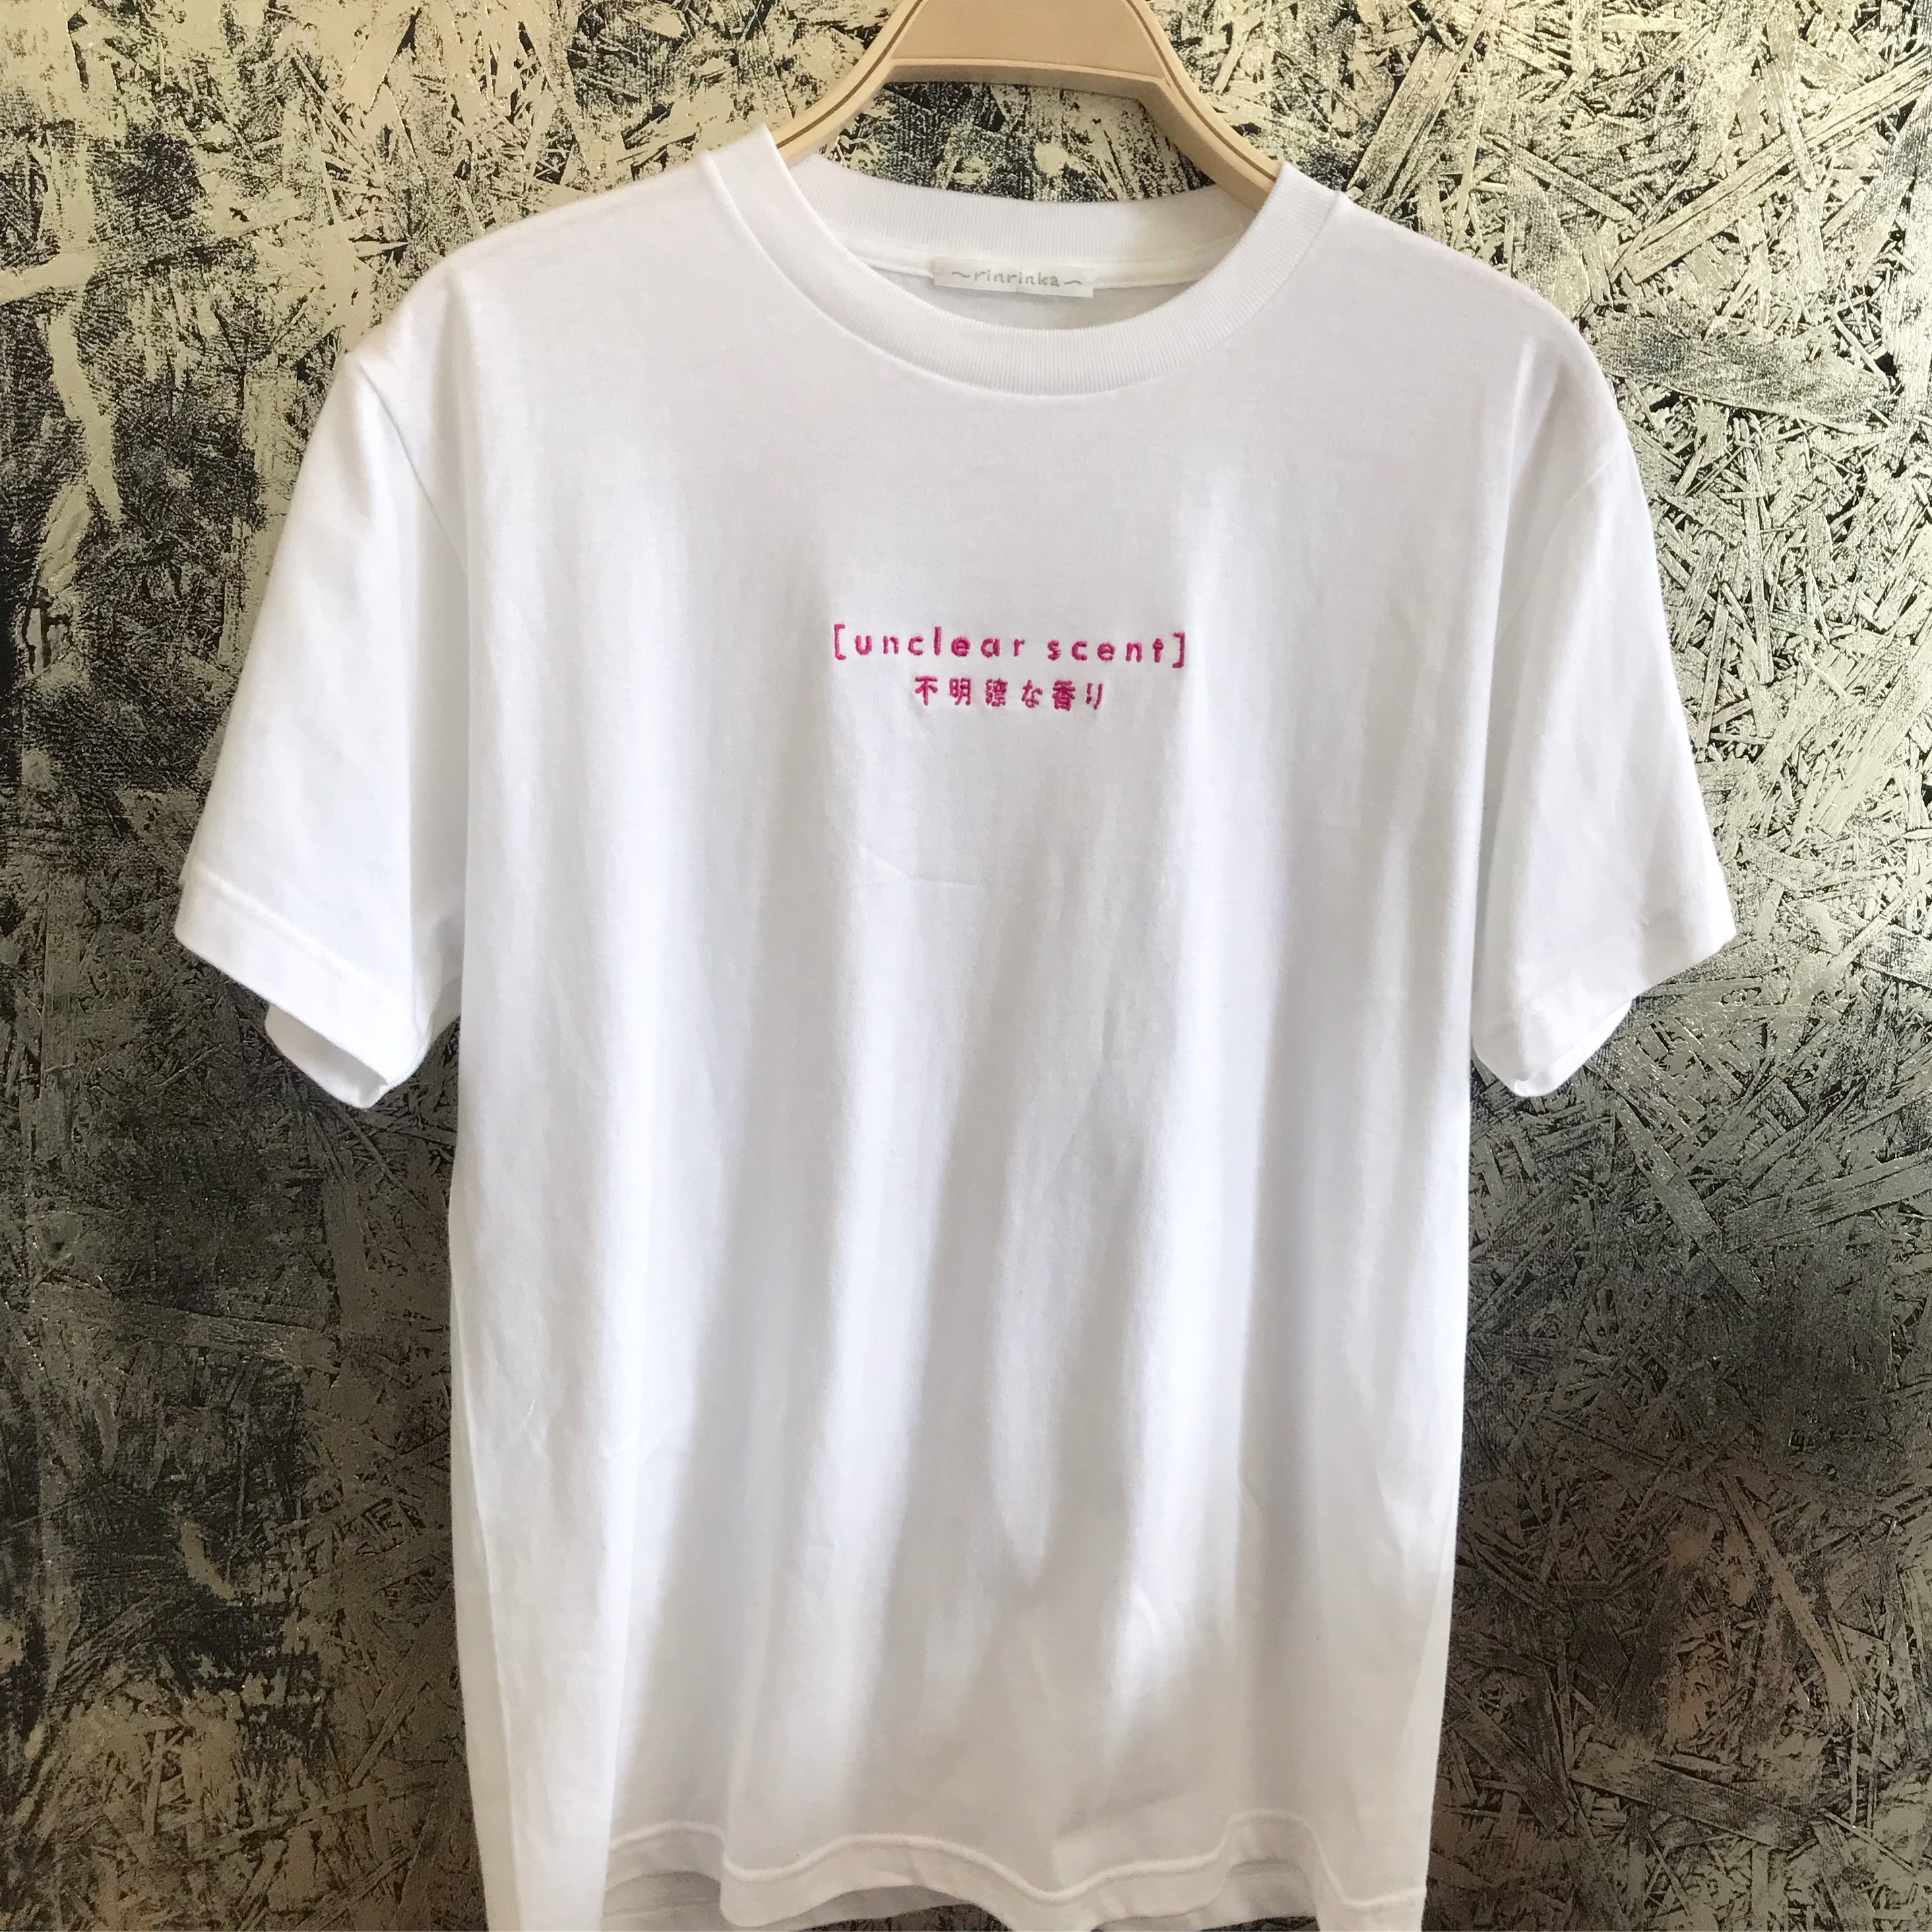 19SS unclear scent logo T-shirt〈White×Pink〉